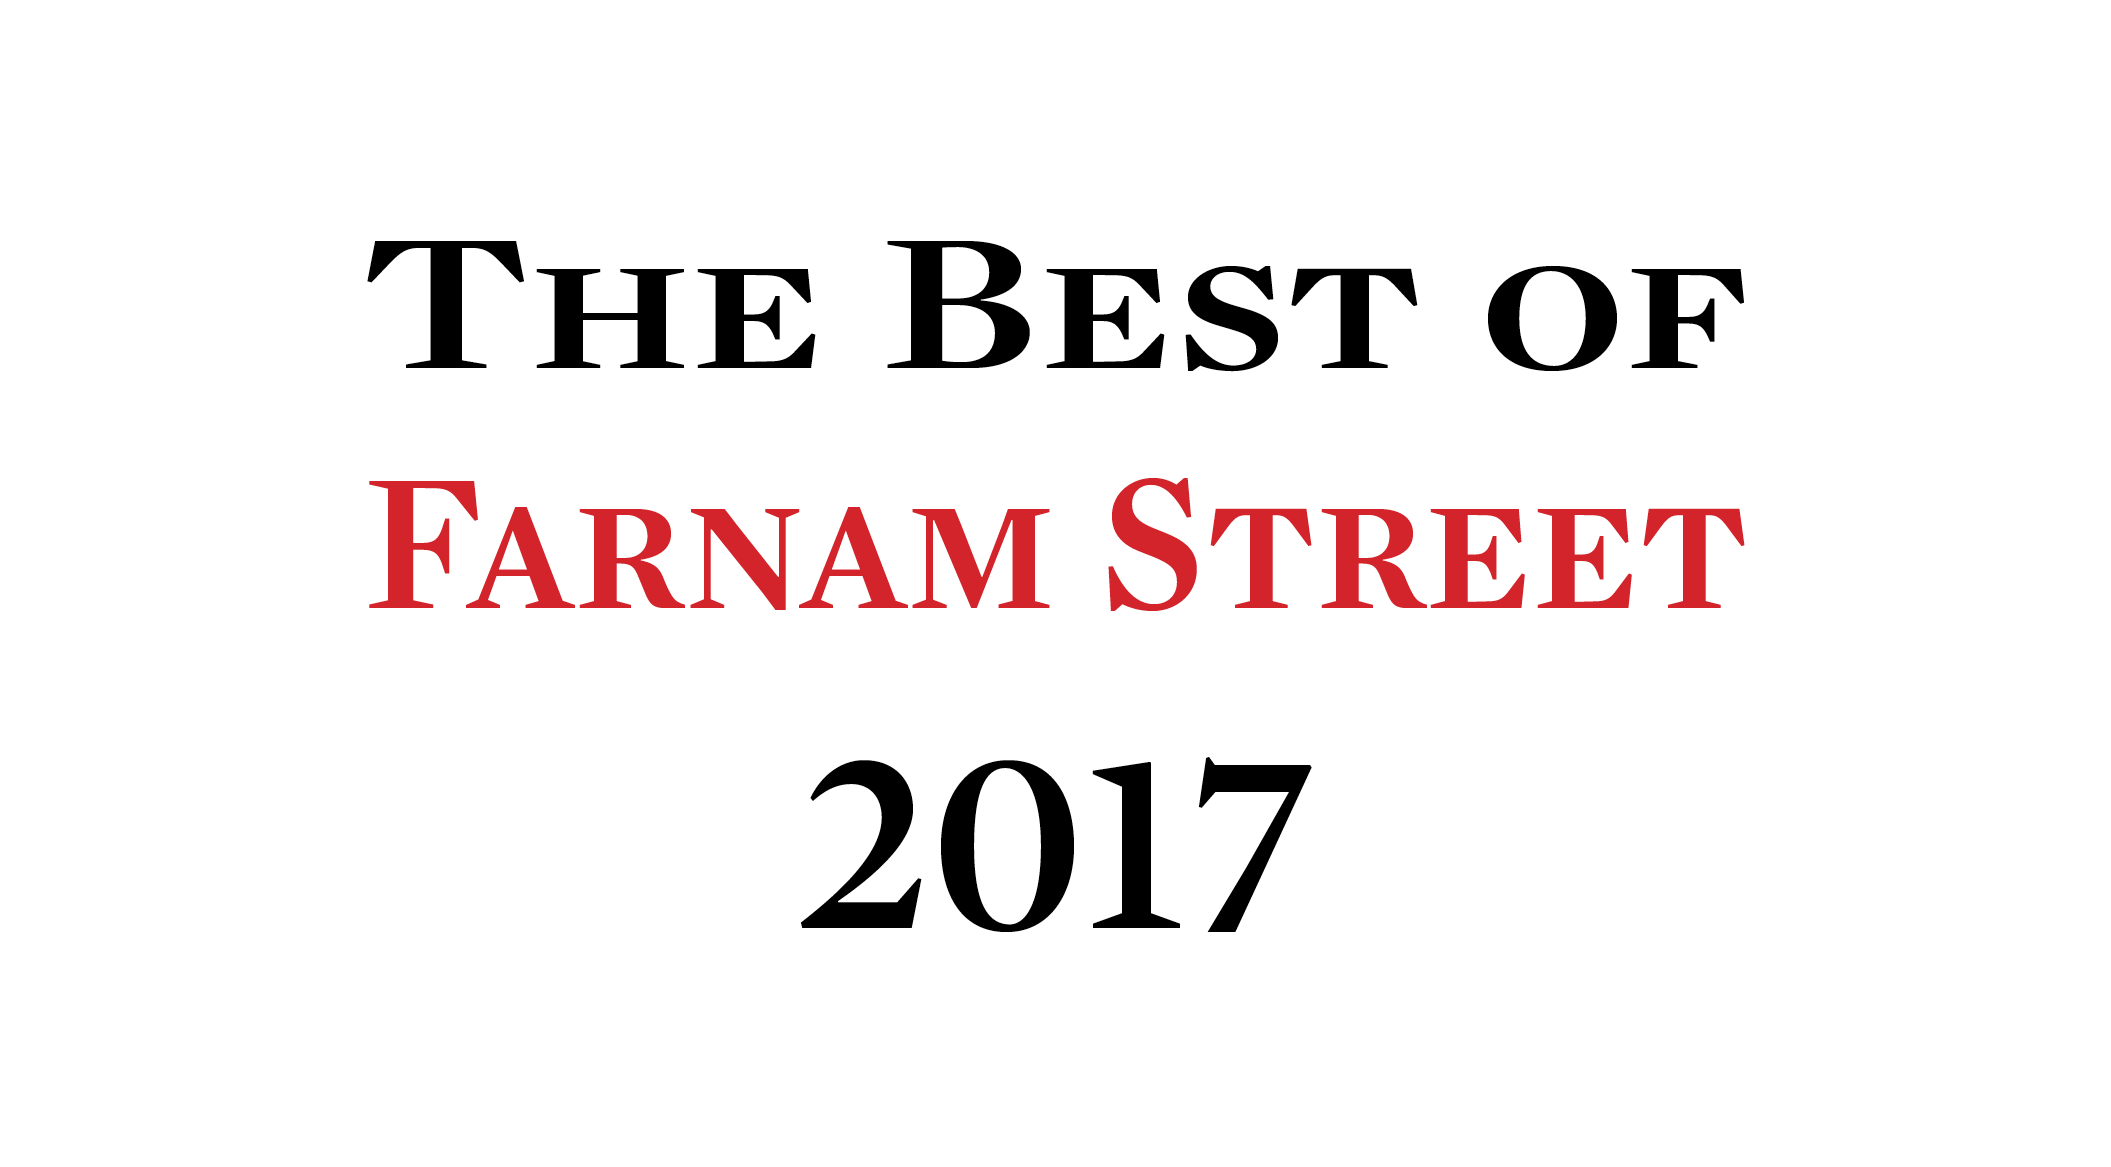 The Best of Farnam Street 2017